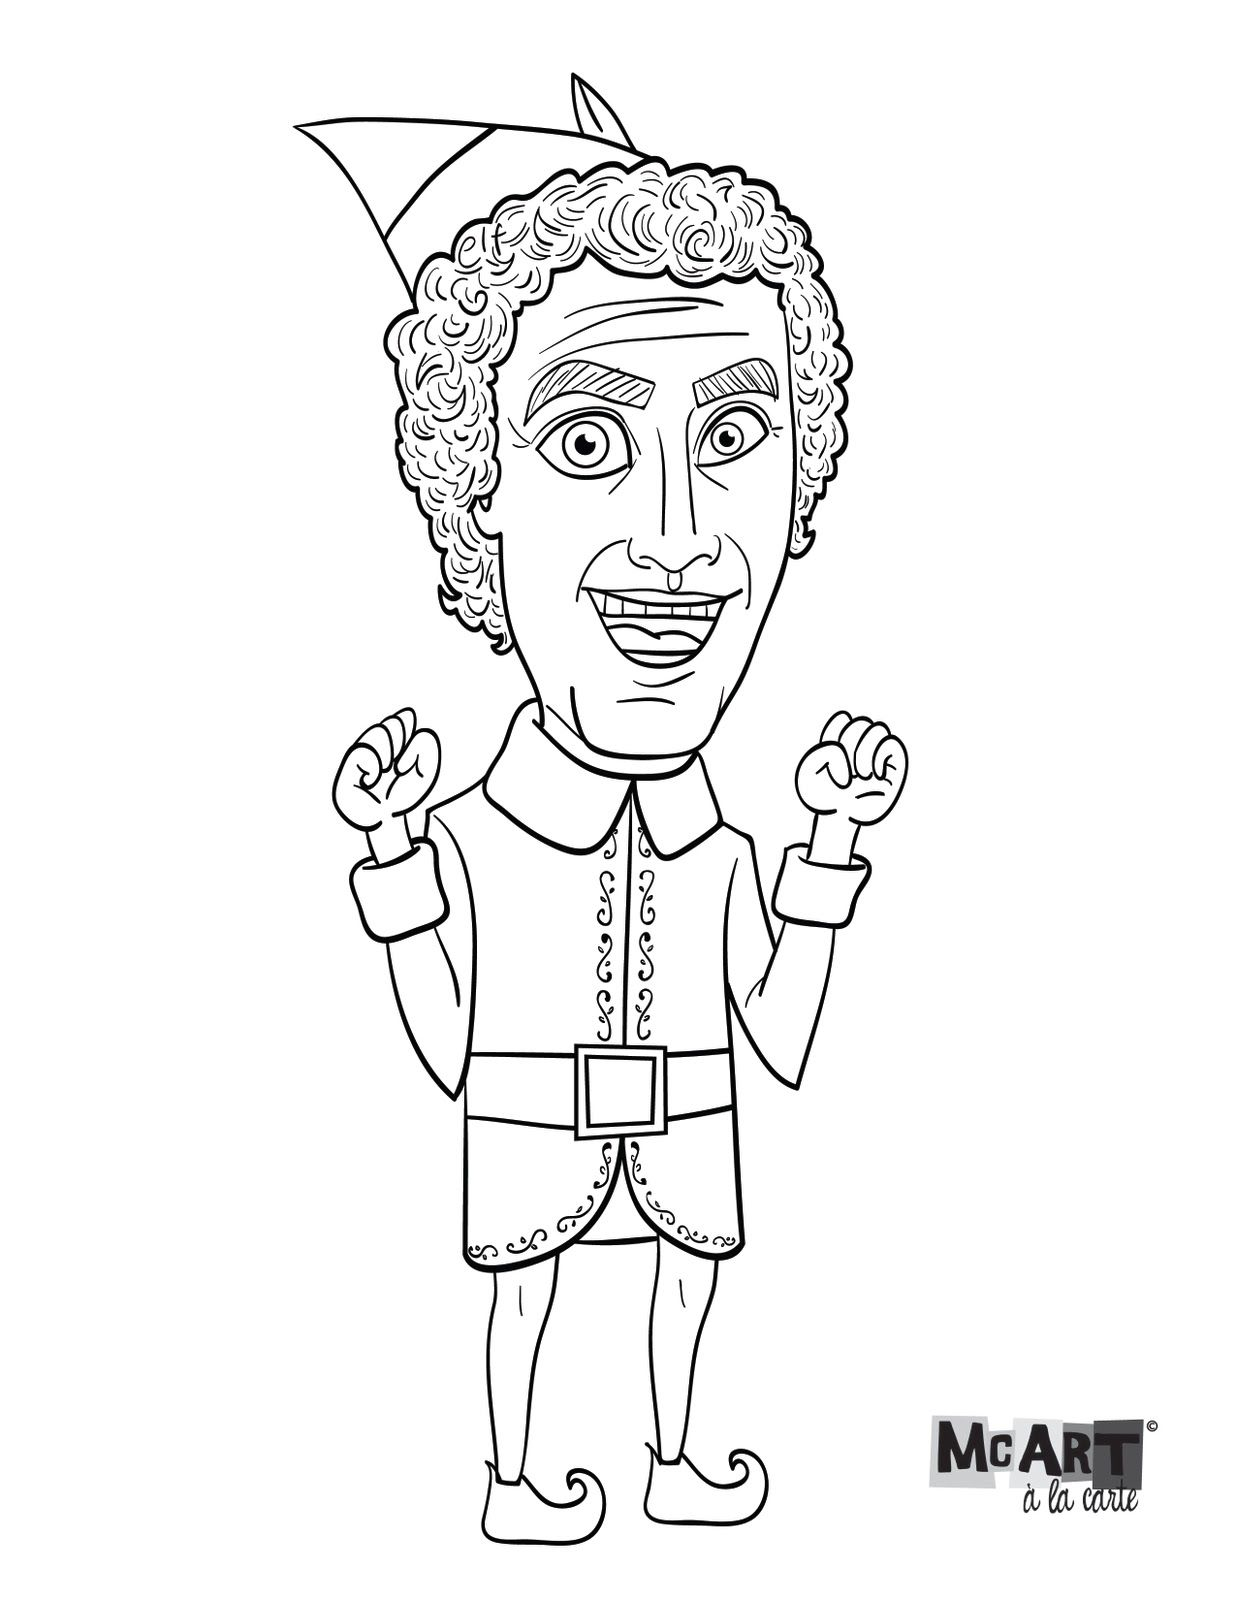 mcart la carte buddy the elf coloring page - Elf Coloring Page